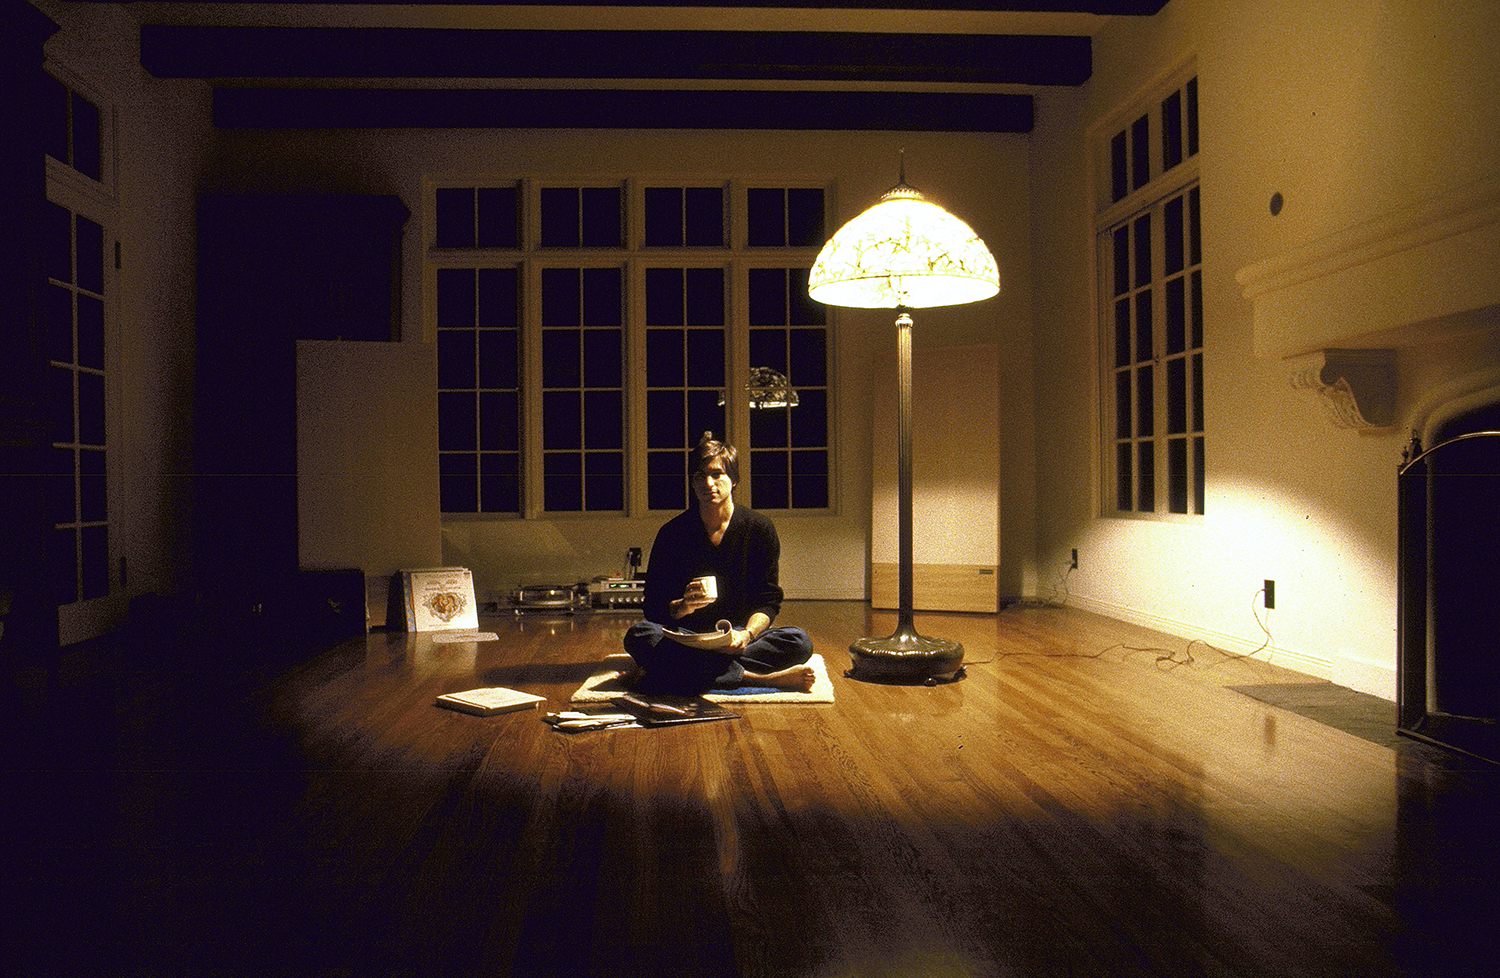 WOODSIDE, CA U2013 DECEMBER 15: CEO Of Apple Steve Jobs Sits At His Home In  Woodside, CA On December 15, 1982. IMAGE PREVIOUSLY A TIME U0026 LIFE IMAGE.